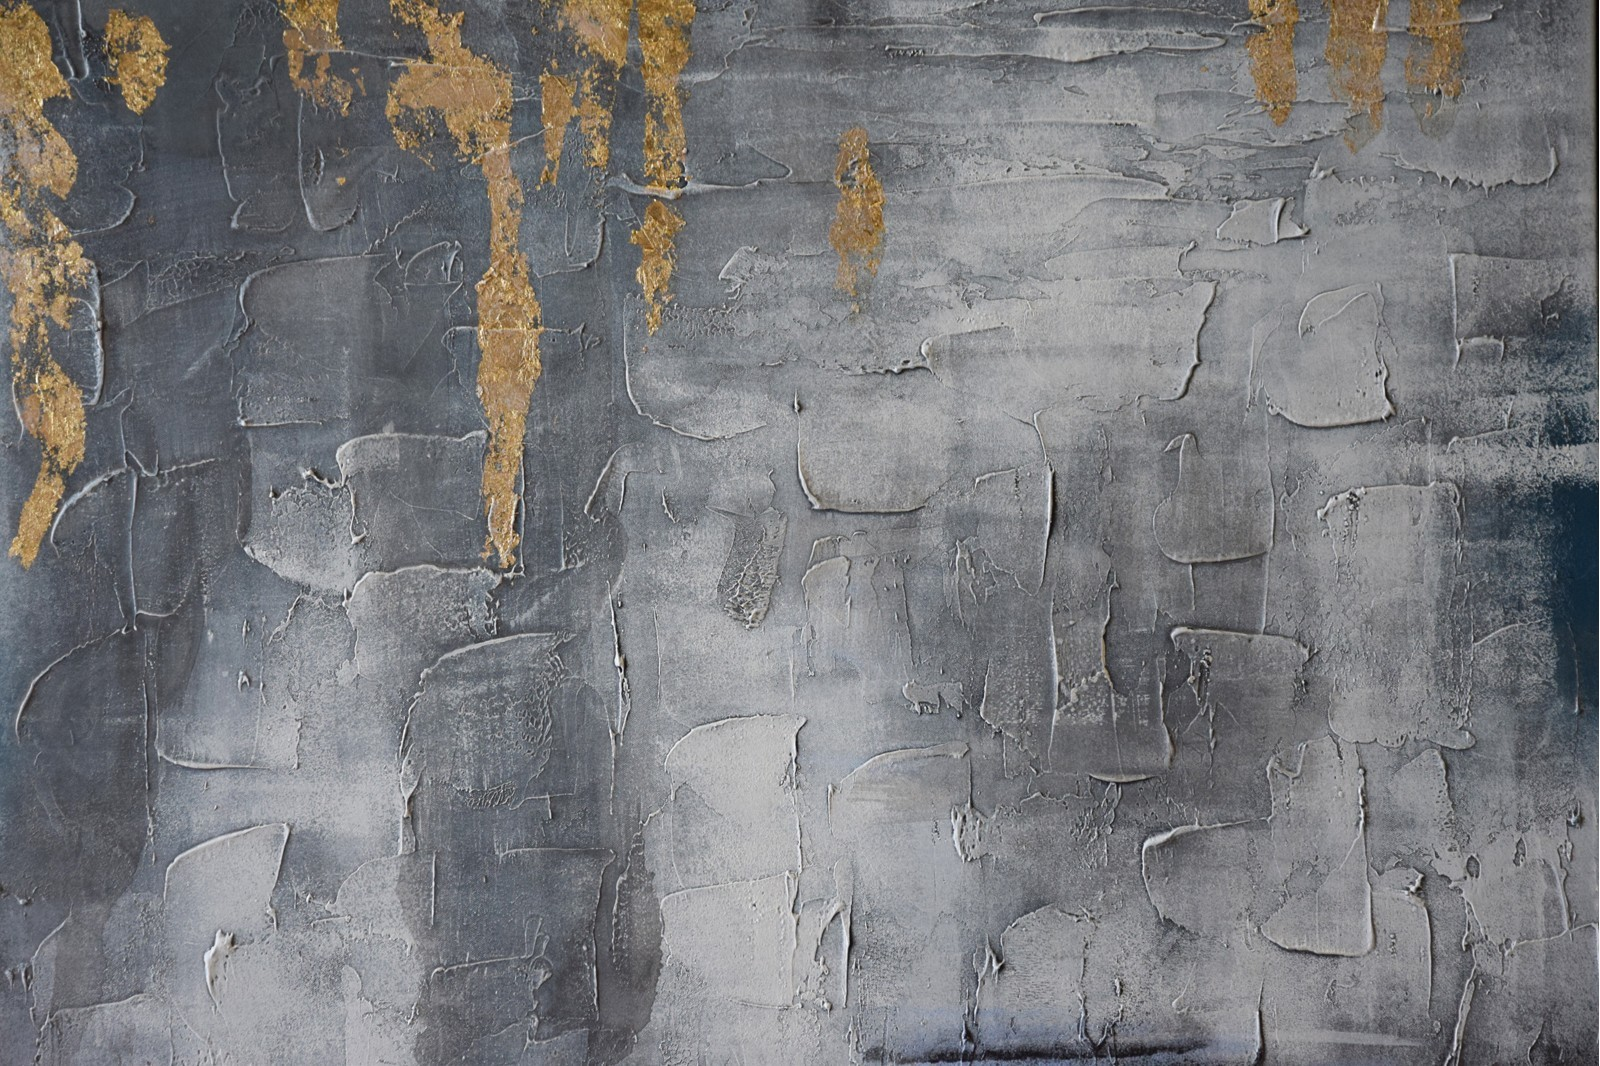 ABSTRACT PAINTING CONCRETE GREY WITH FRAME